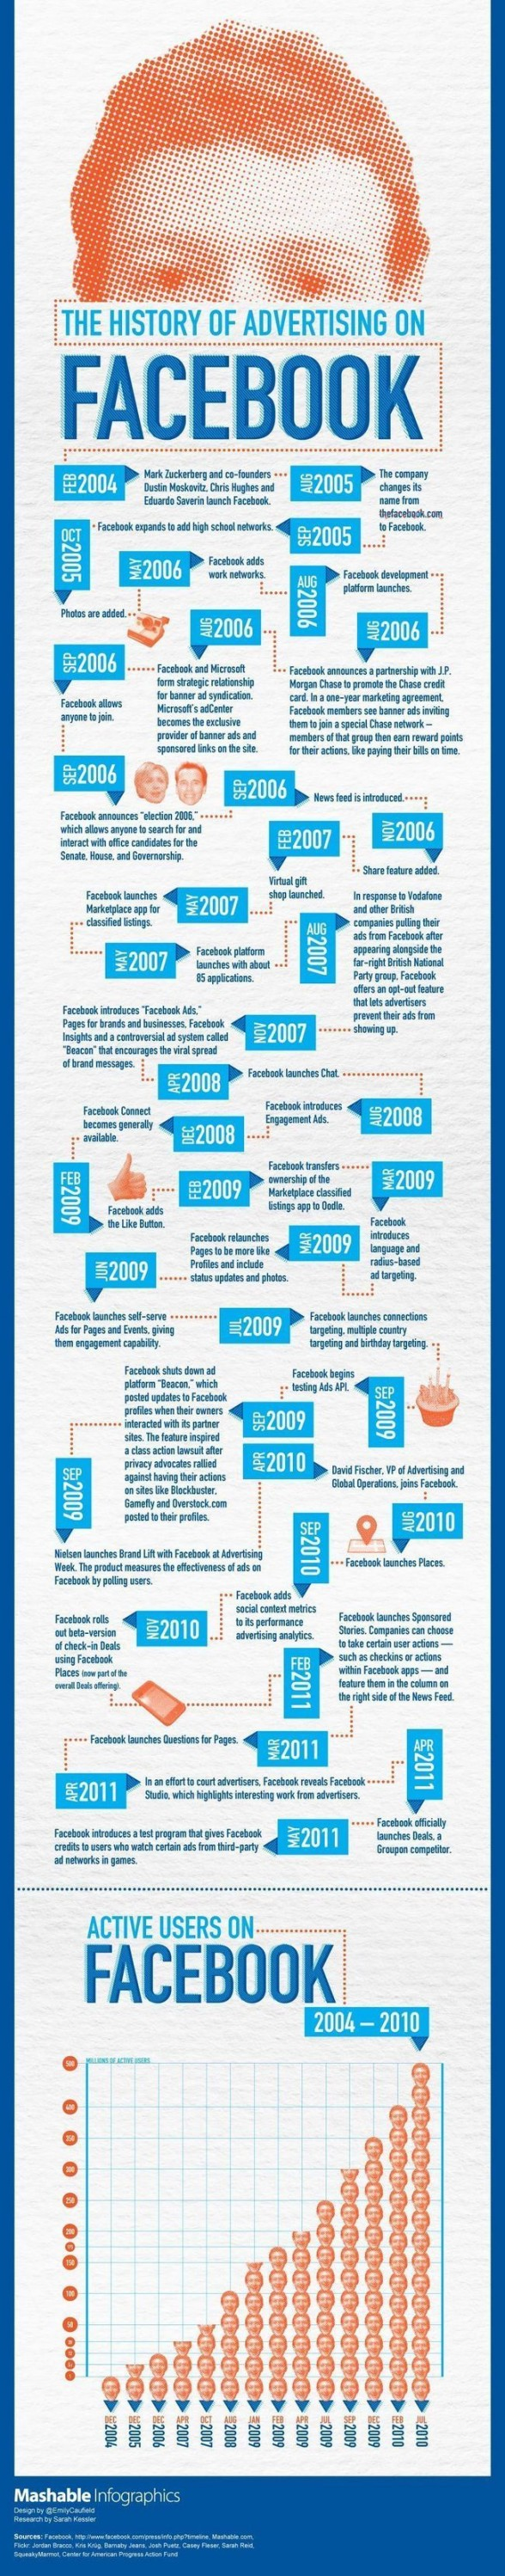 facebook-advertising-mashable-infographic-902.jpg